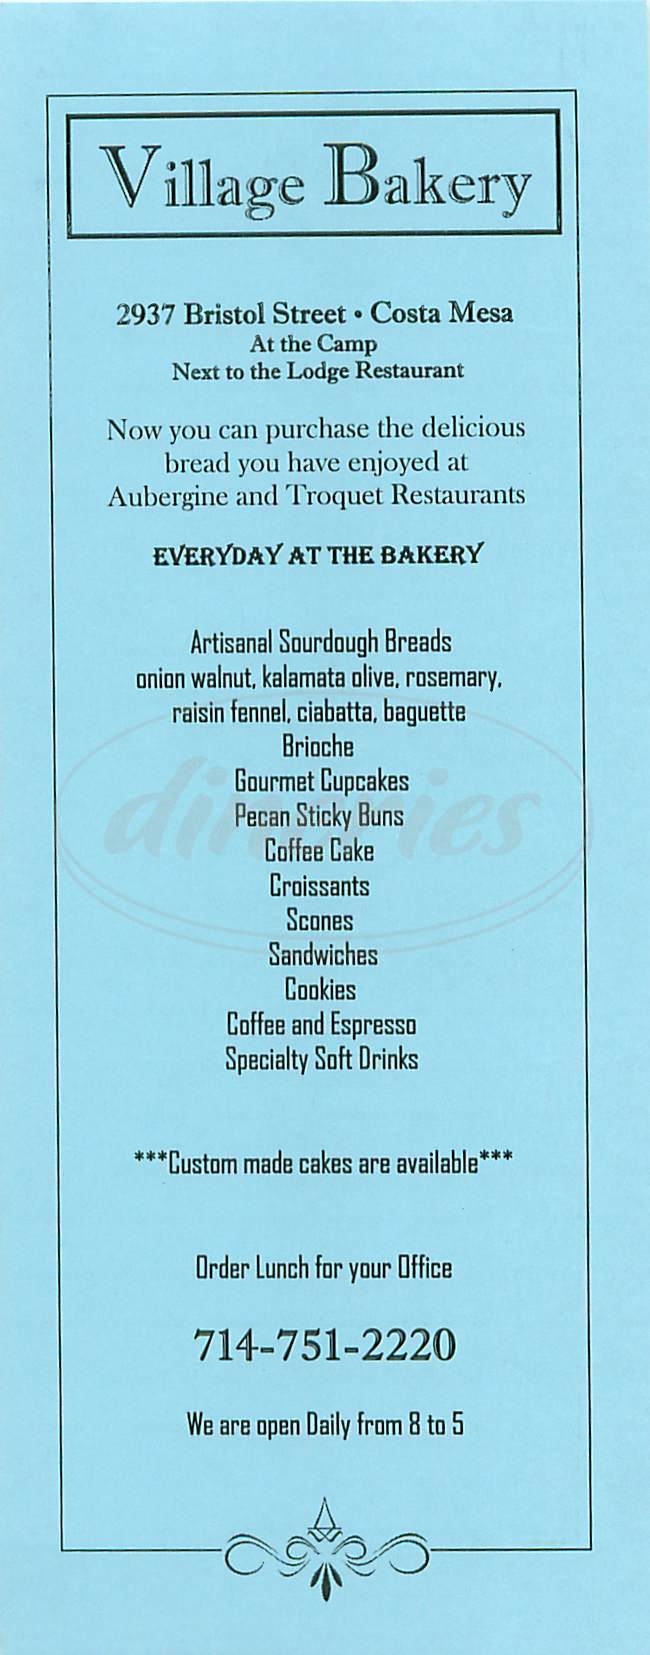 menu for Village Bakery